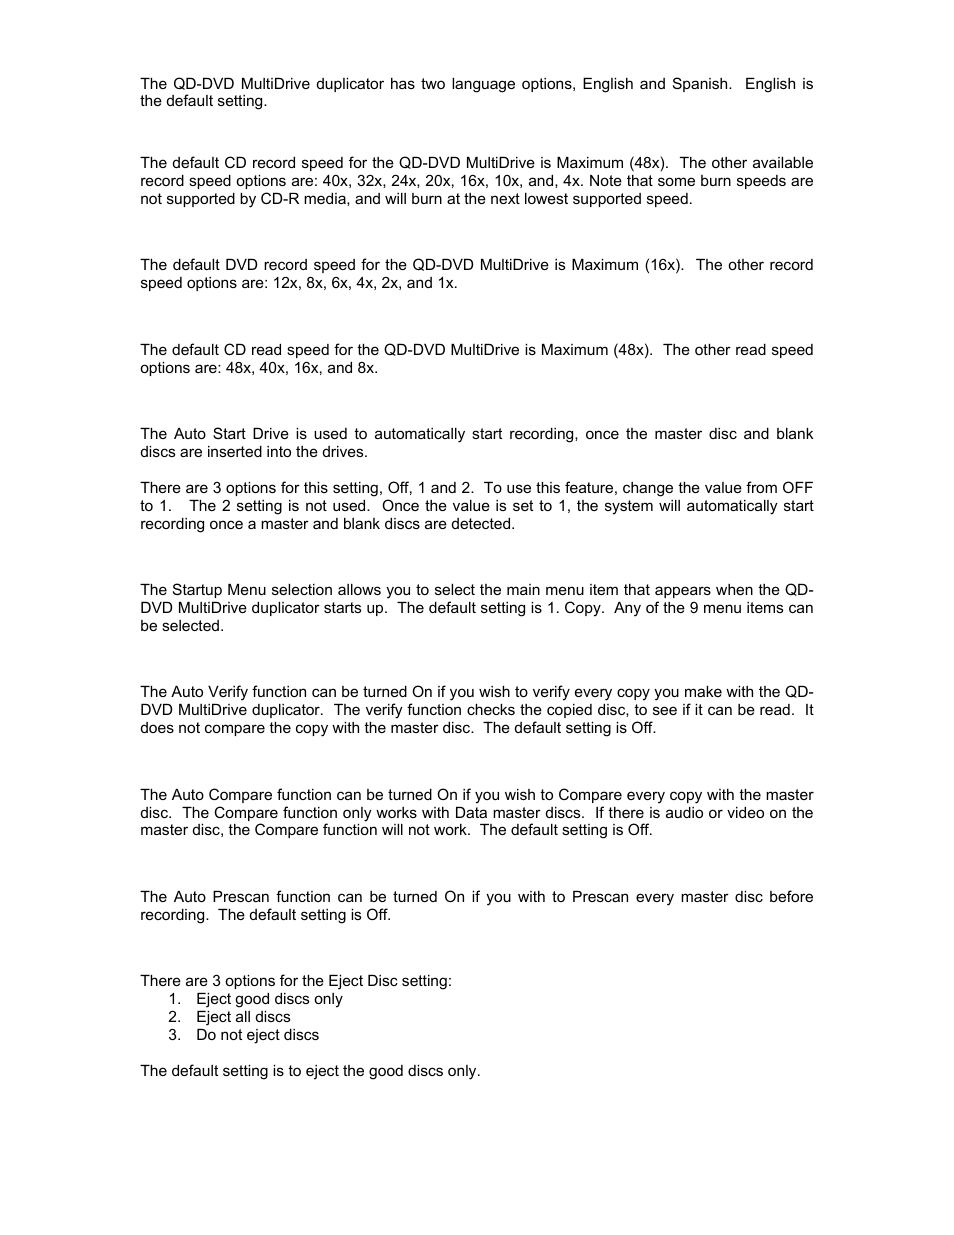 MicroBoards Technology QD-DVD 127 User Manual | Page 15 / 21